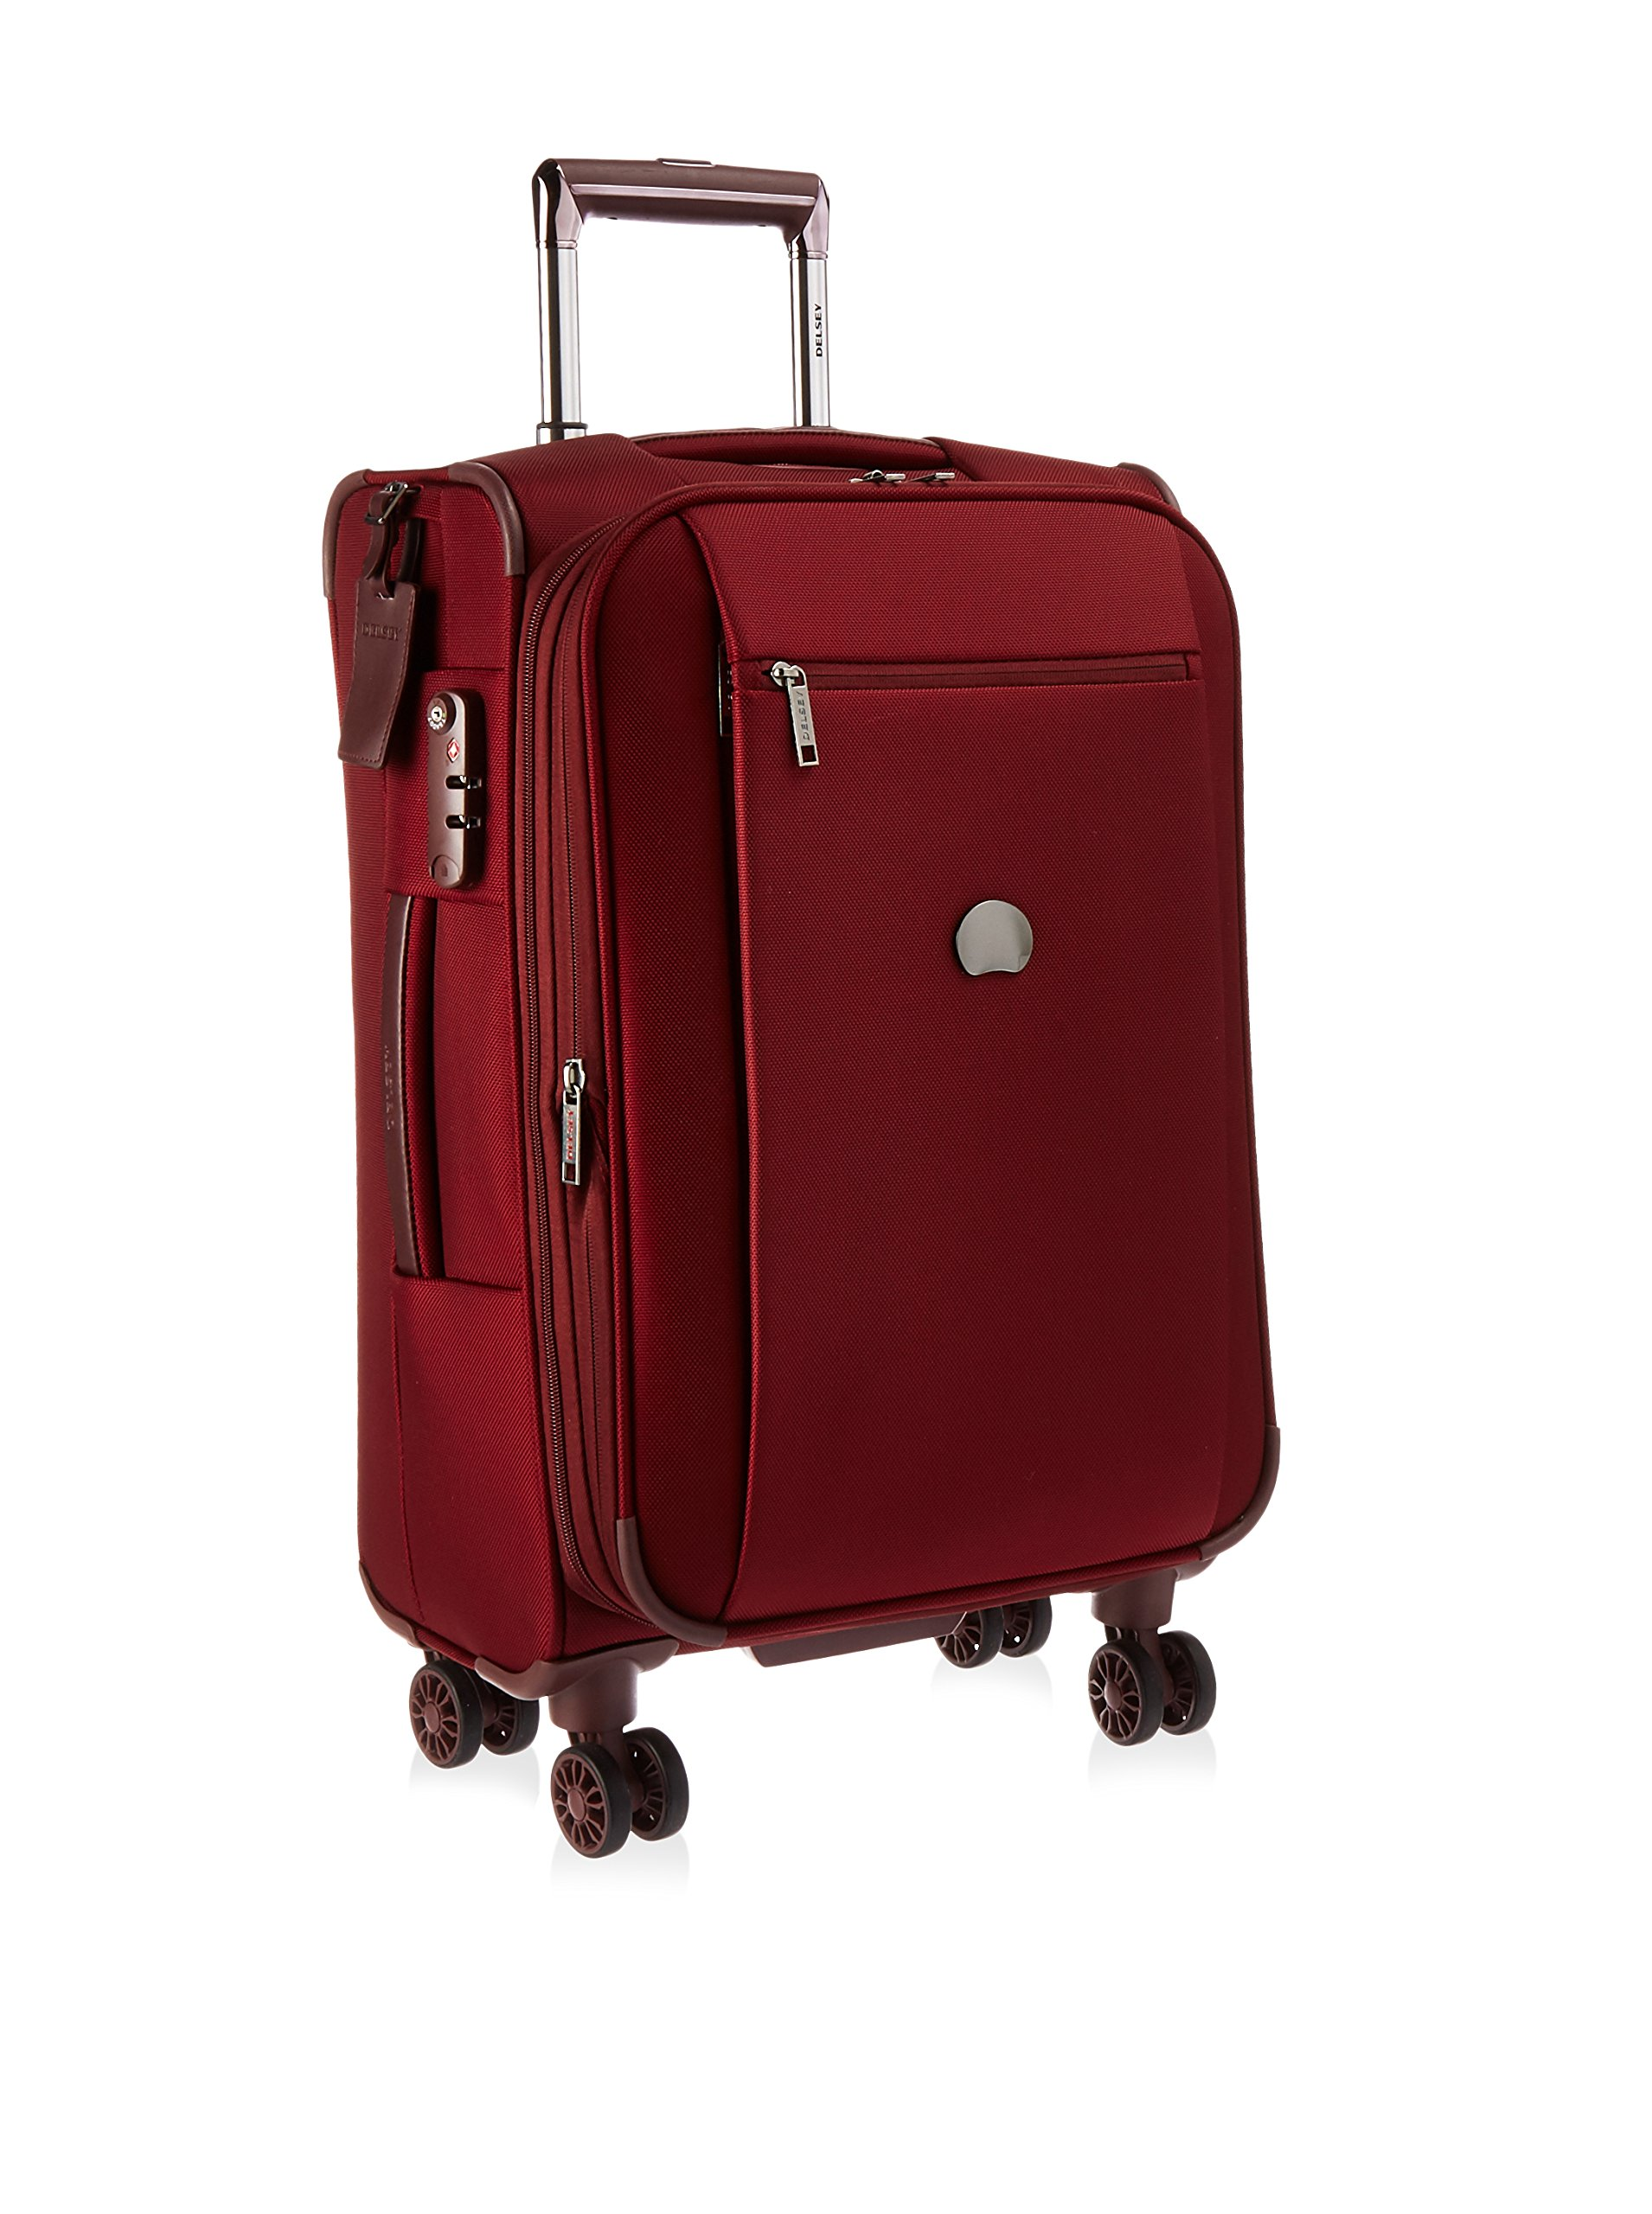 Delsey Luggage Montmartre 21 Inch Expandable Spinner Carry On Suitcase, Bordeaux by DELSEY Paris